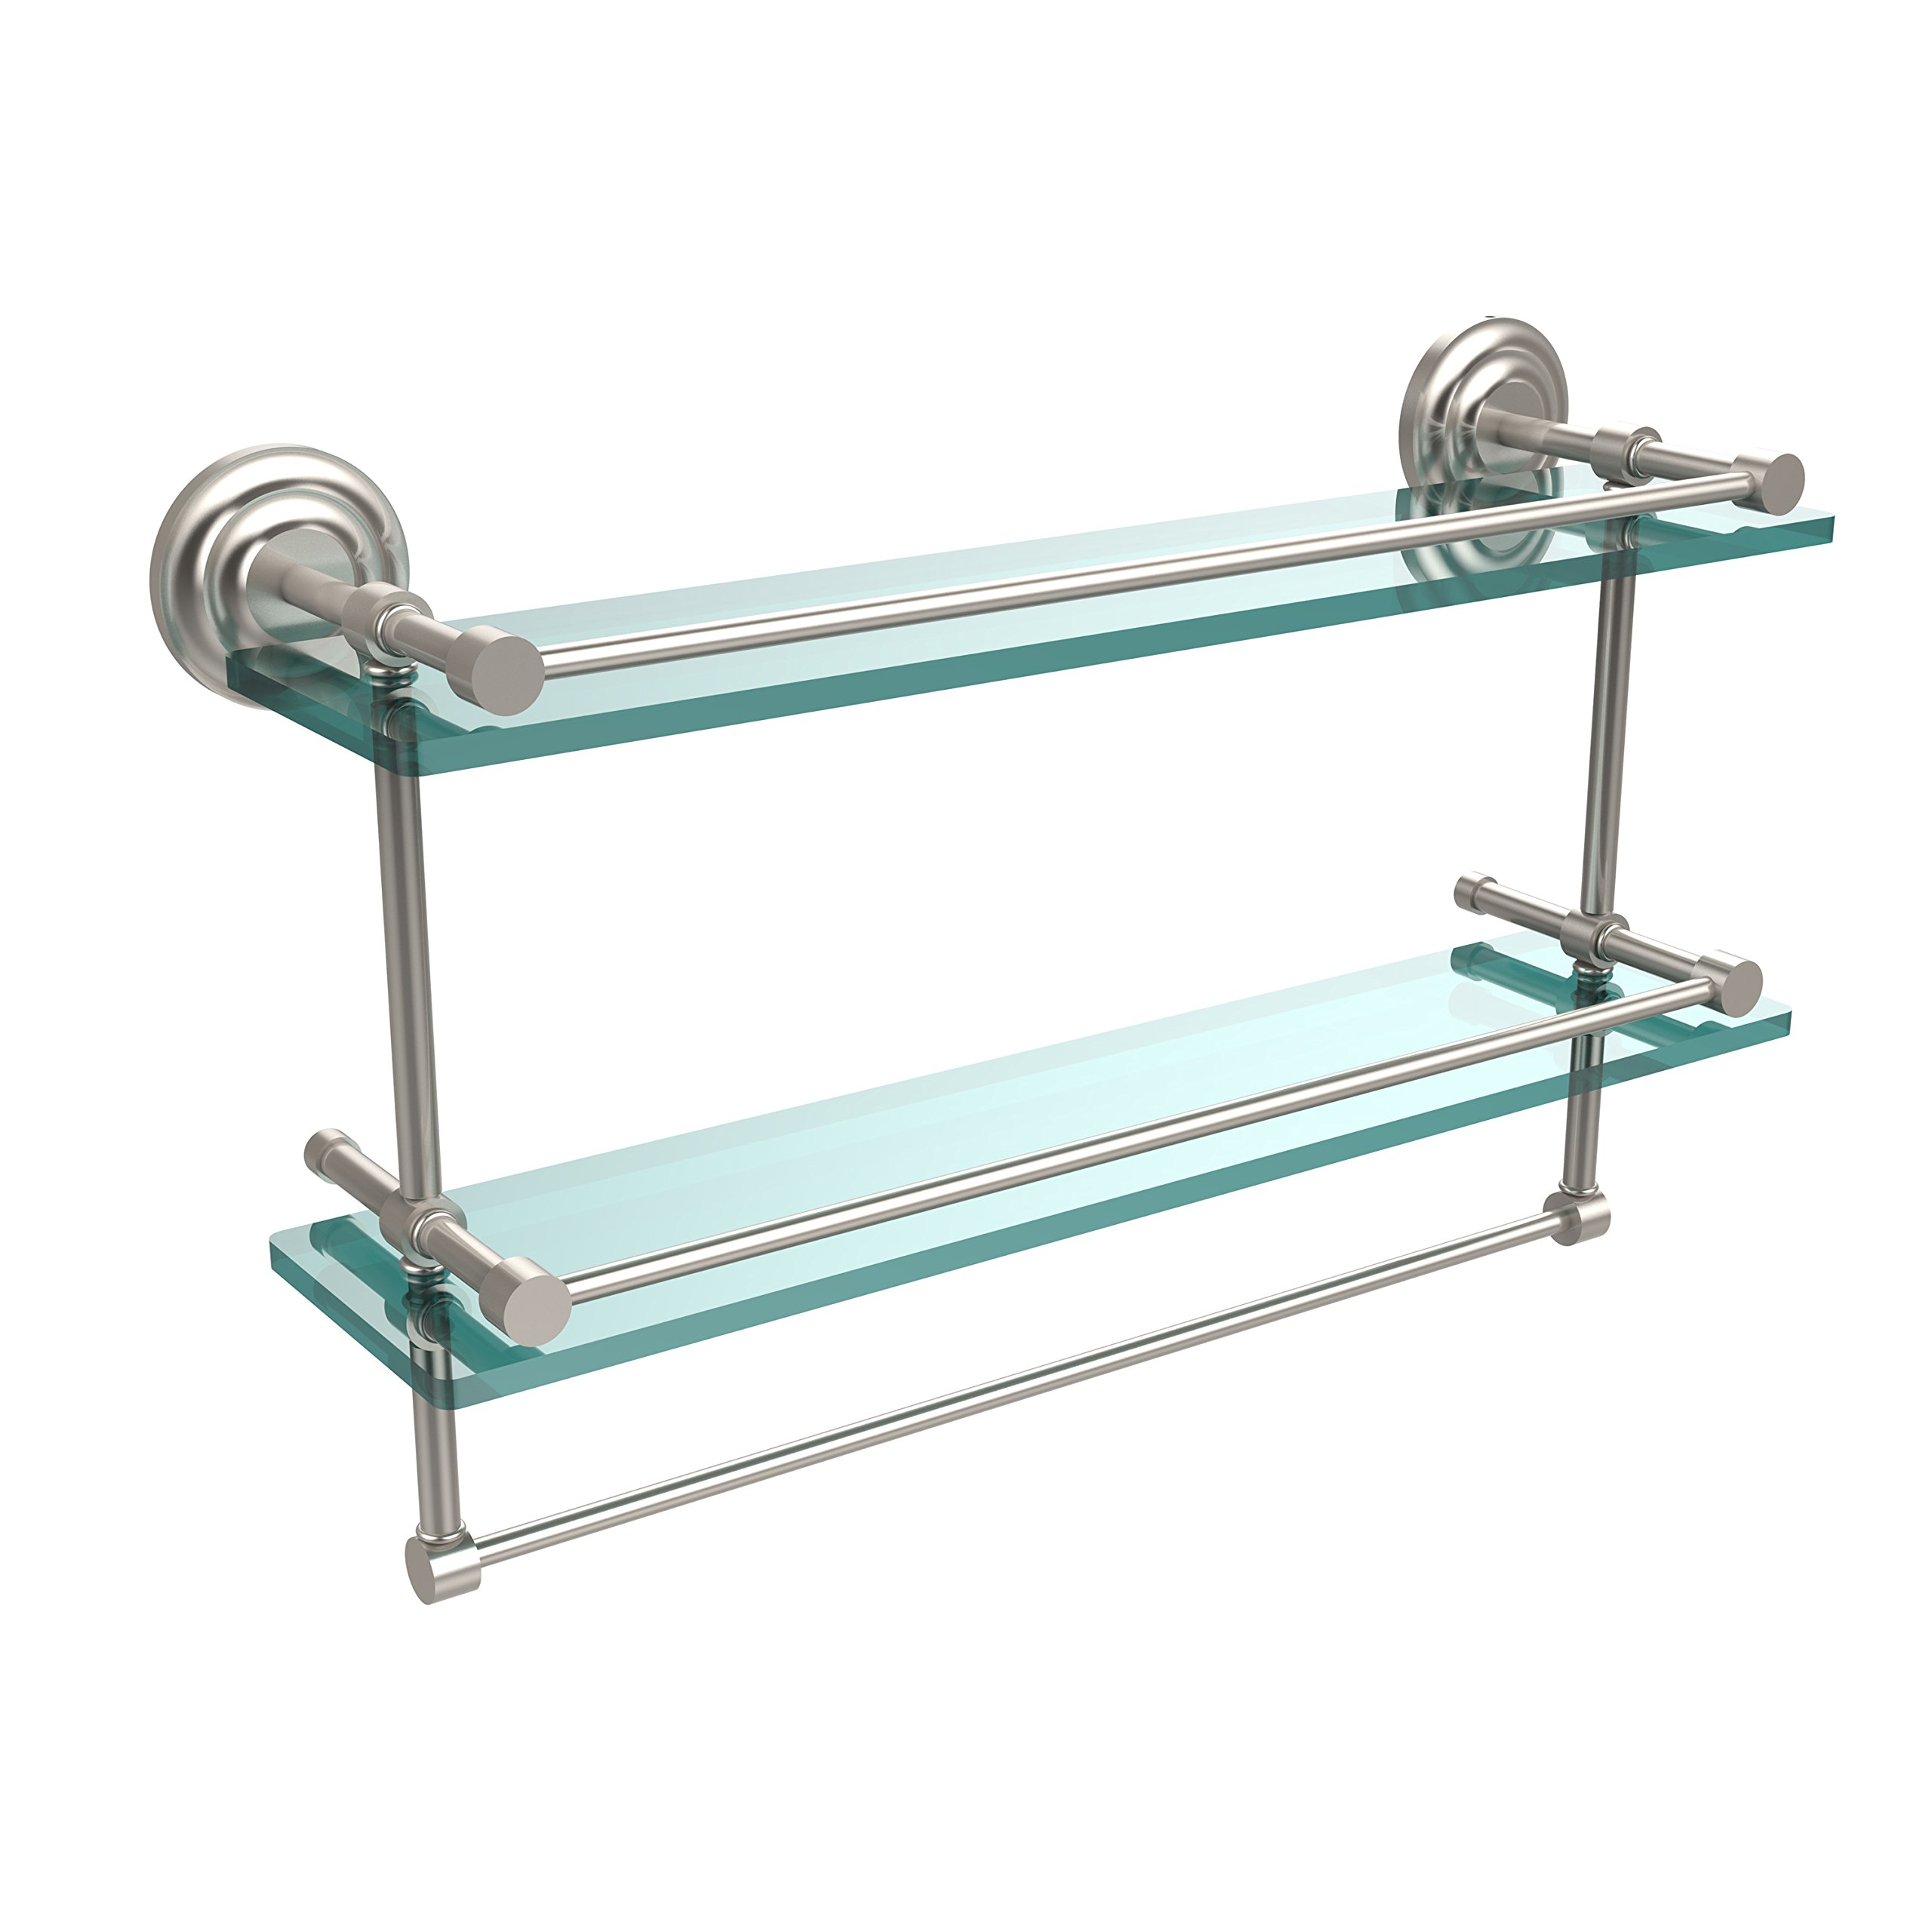 Allied Brass QN-2TB/22-GAL-SN 22-Inch Gallery Double Glass Shelf with Towel Bar, Satin Nickel